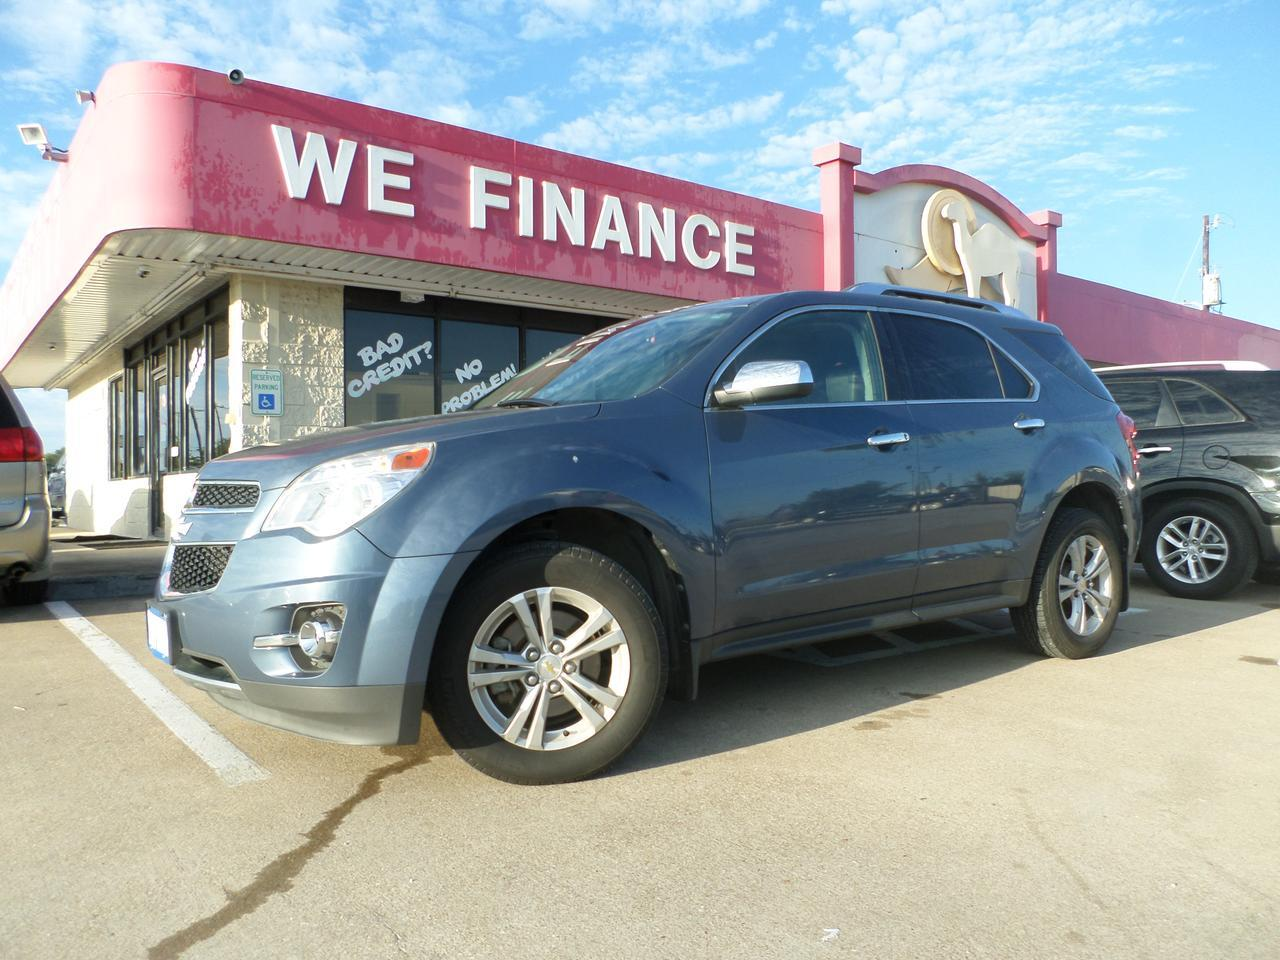 2012 Chevrolet Equinox Leather-Sunroof-CD-Reverse Cam-NAV-AWD-Alloywheels-powerlocks